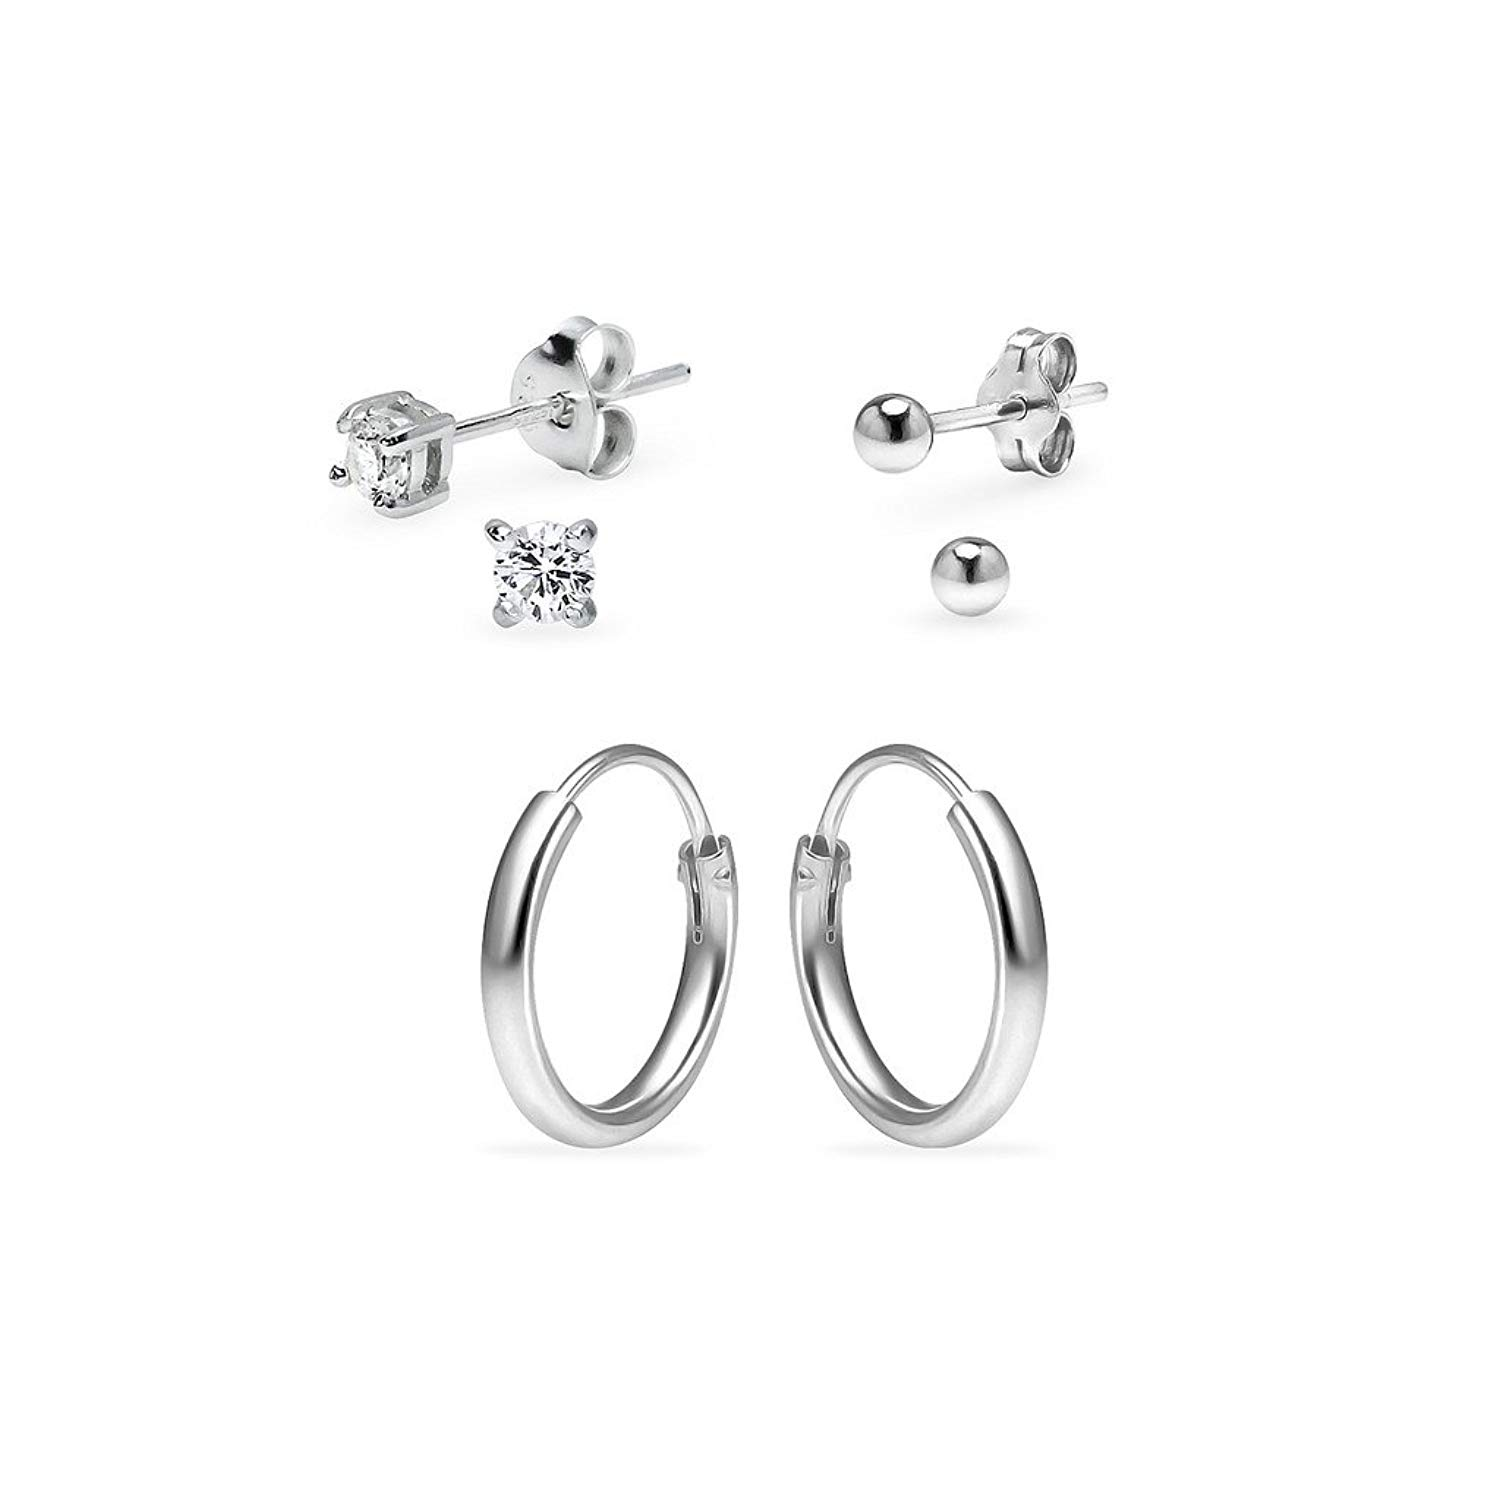 0fe8d901d Get Quotations · Three Pairs Sterling Silver 10mm Endless Hoops 3mm Round  CZ & 3mm Ball Stud Unisex Cartilage